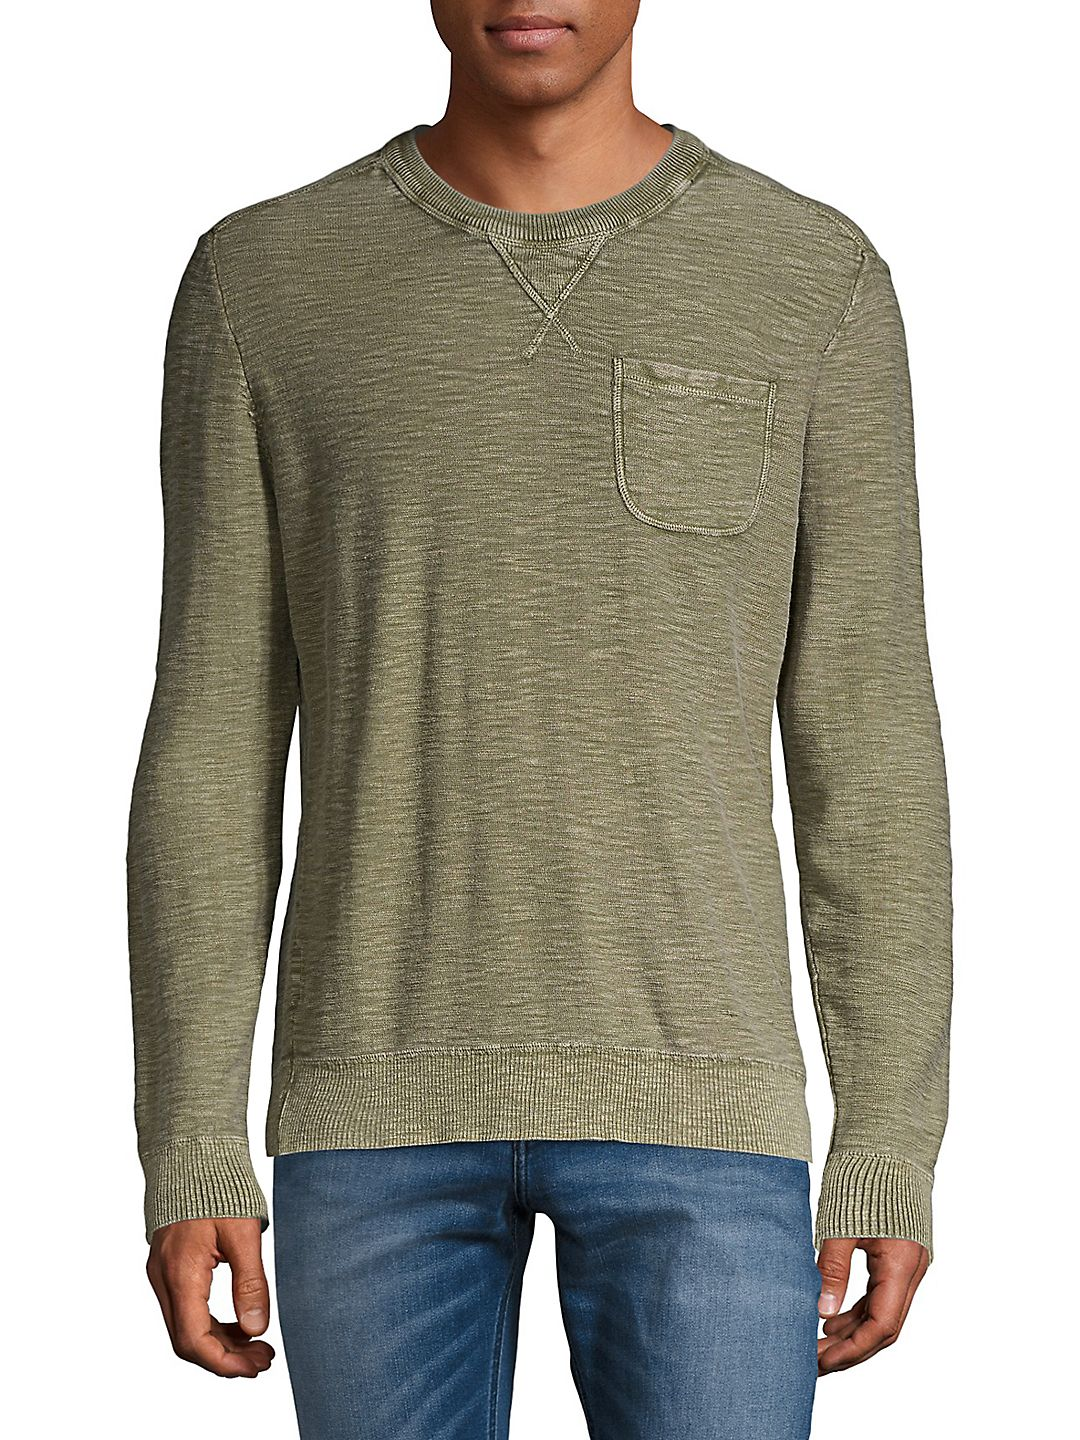 Welter Weight Heathered Cotton Top